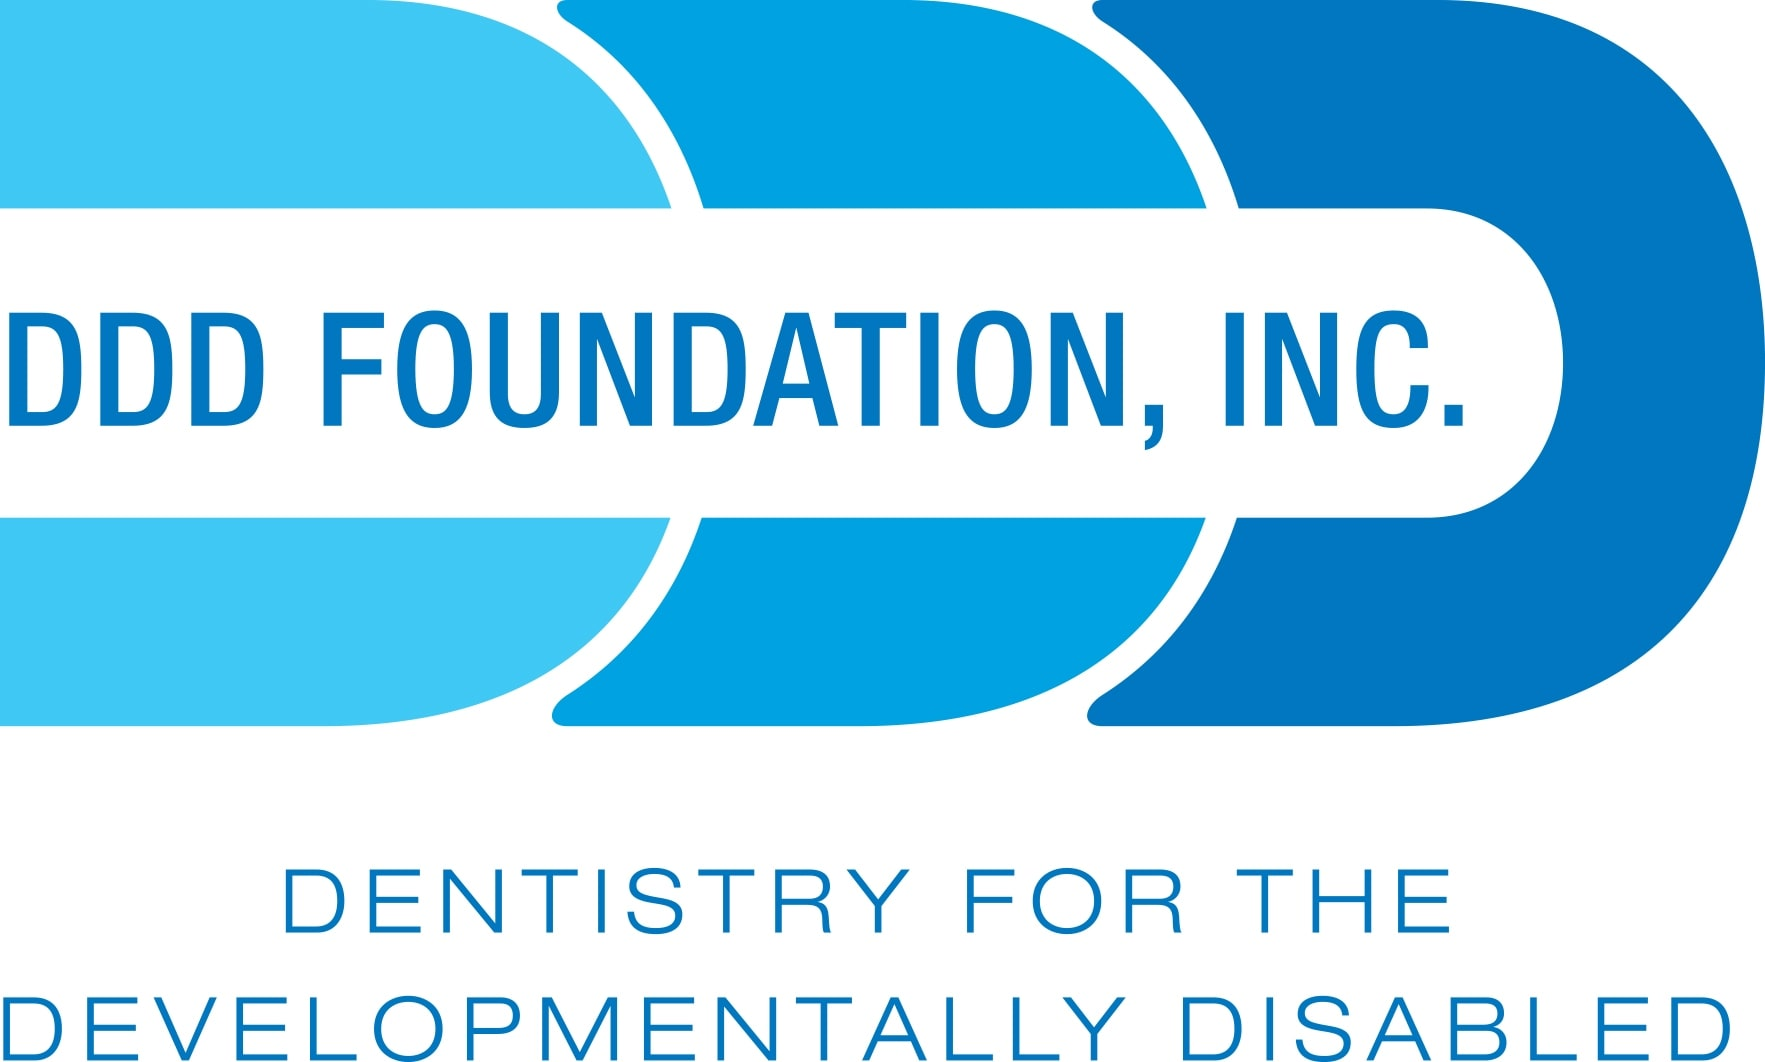 DDD Foundation, Inc. (Dentistry for the Developmentally Disabled)